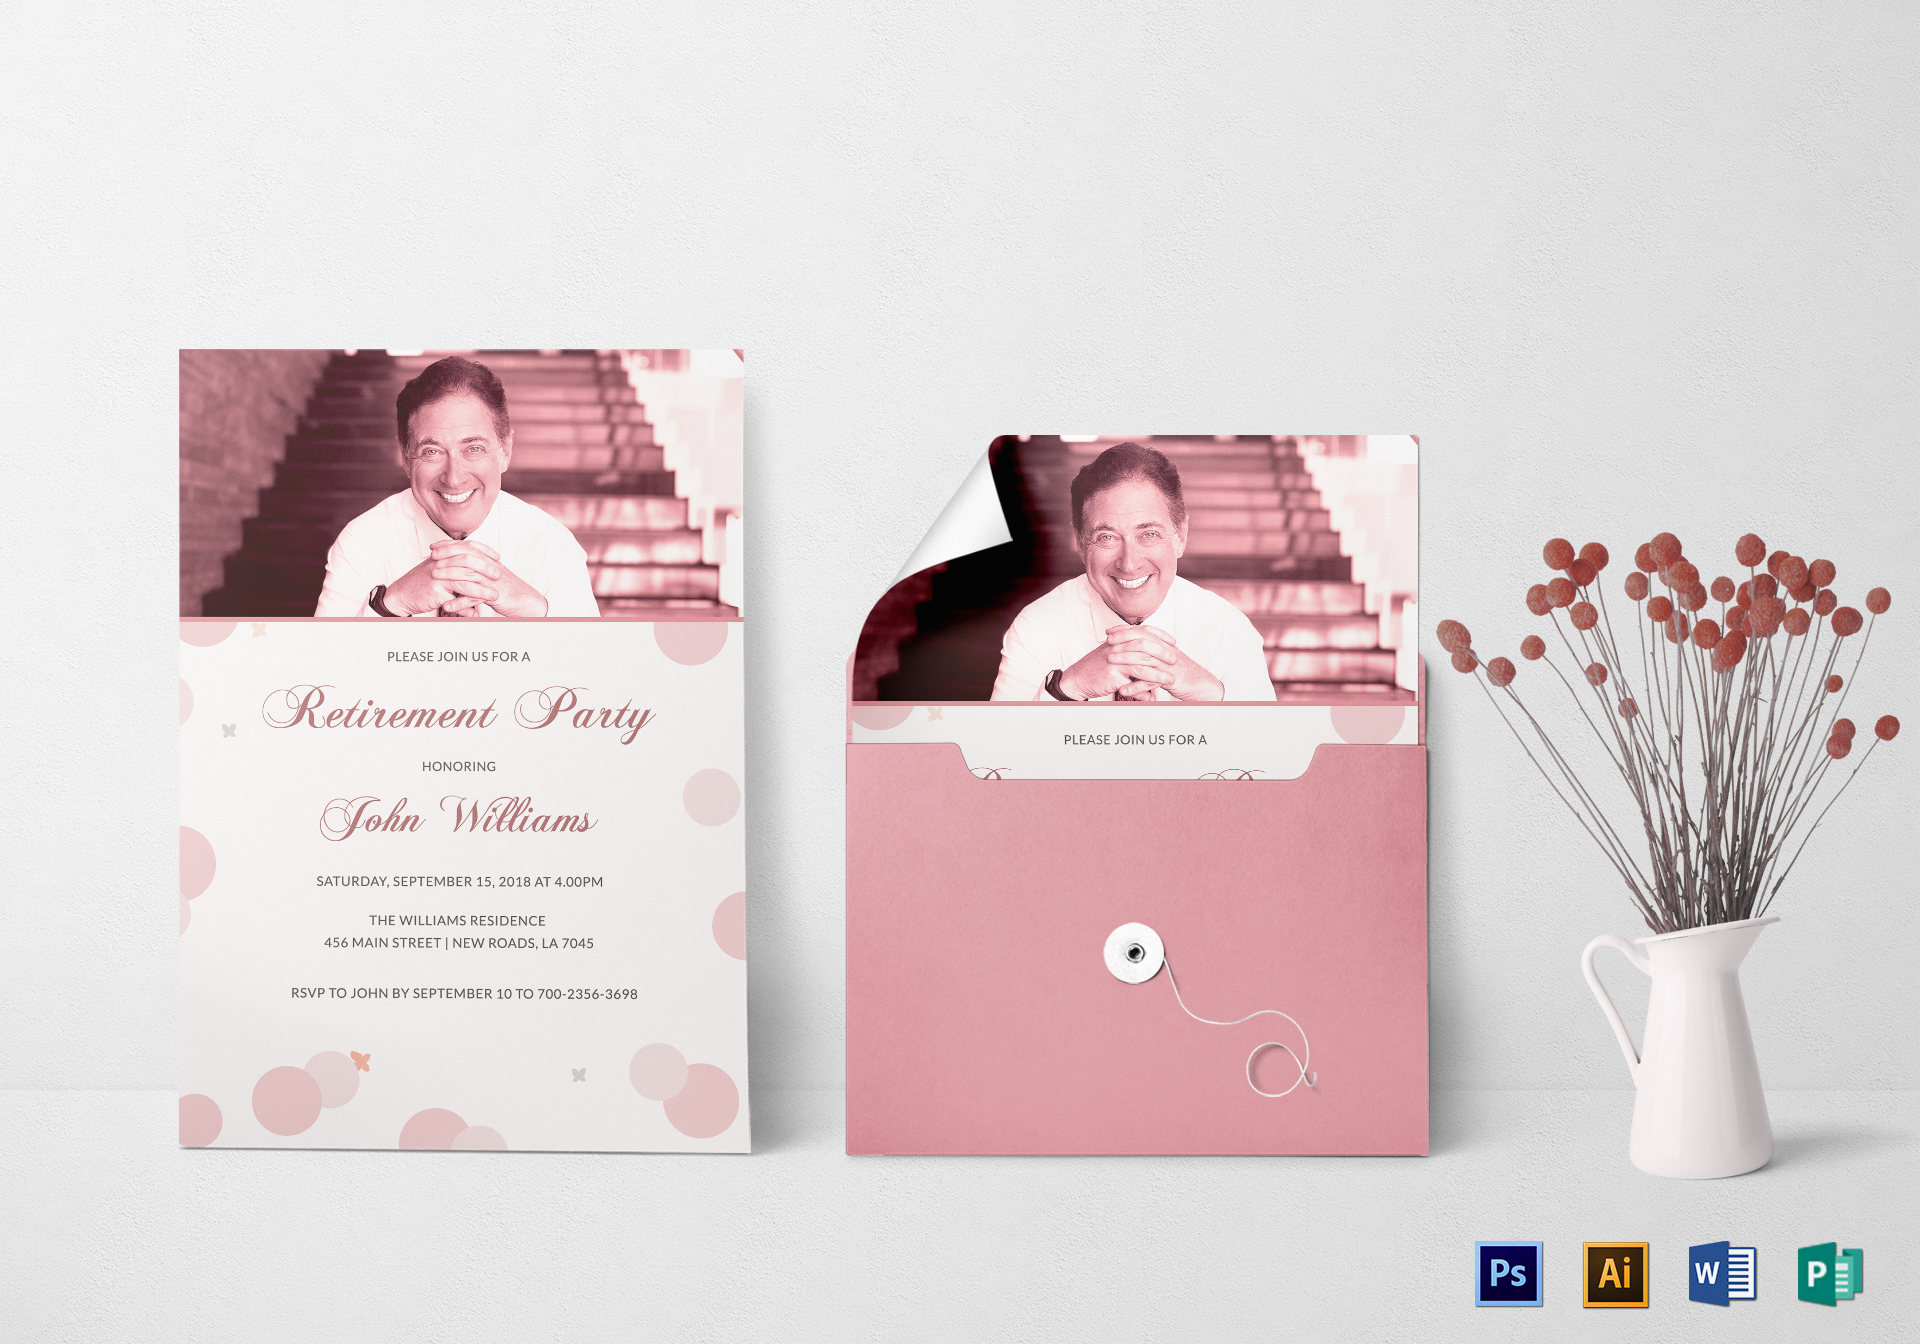 Honored Retirement Party Invitation Card Design Template in PSD ...